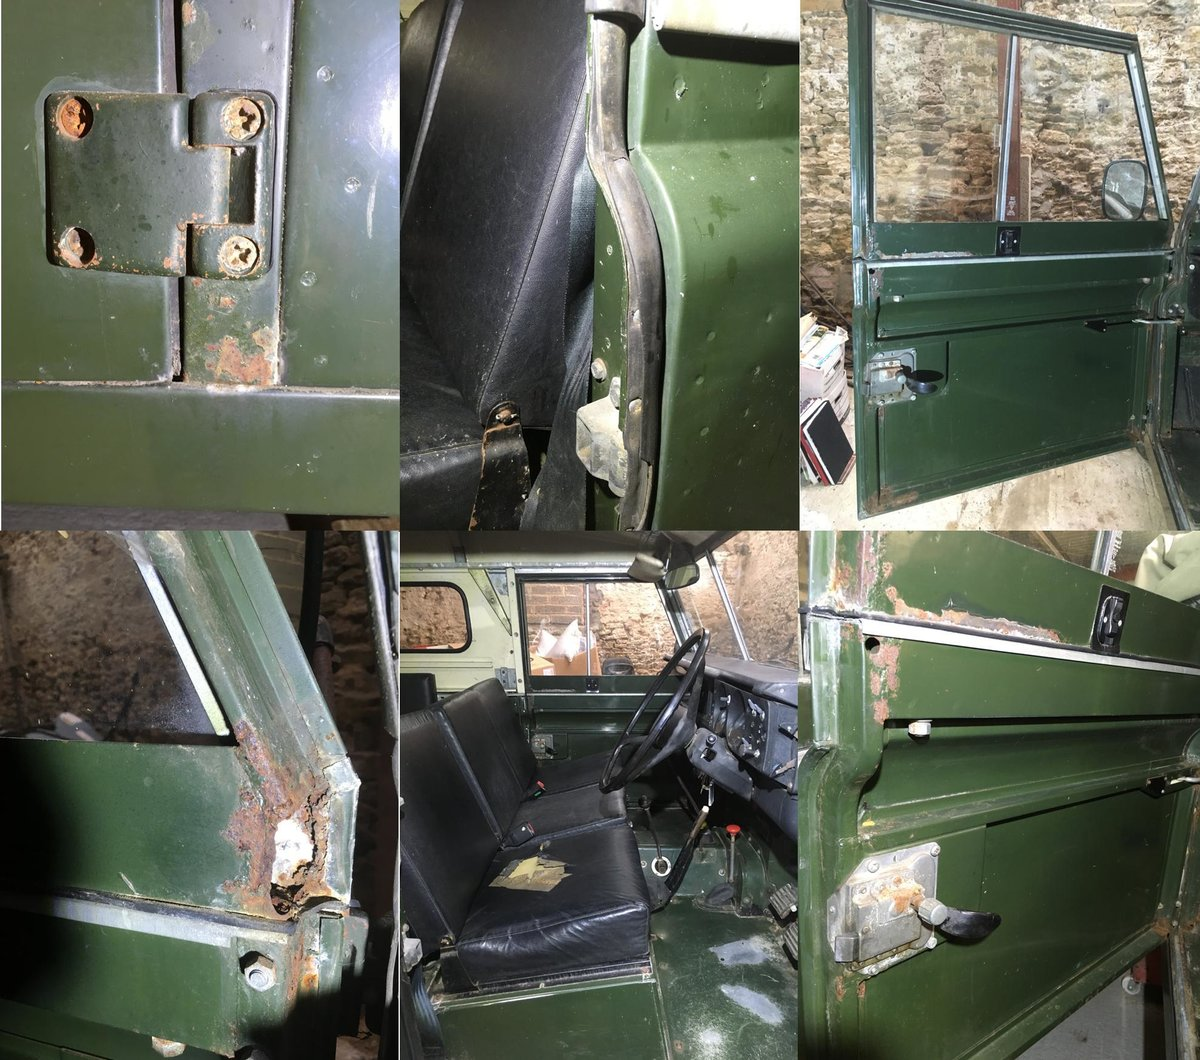 1981 Land Rover Series 3 SWB Hardtop In very original For Sale (picture 4 of 6)